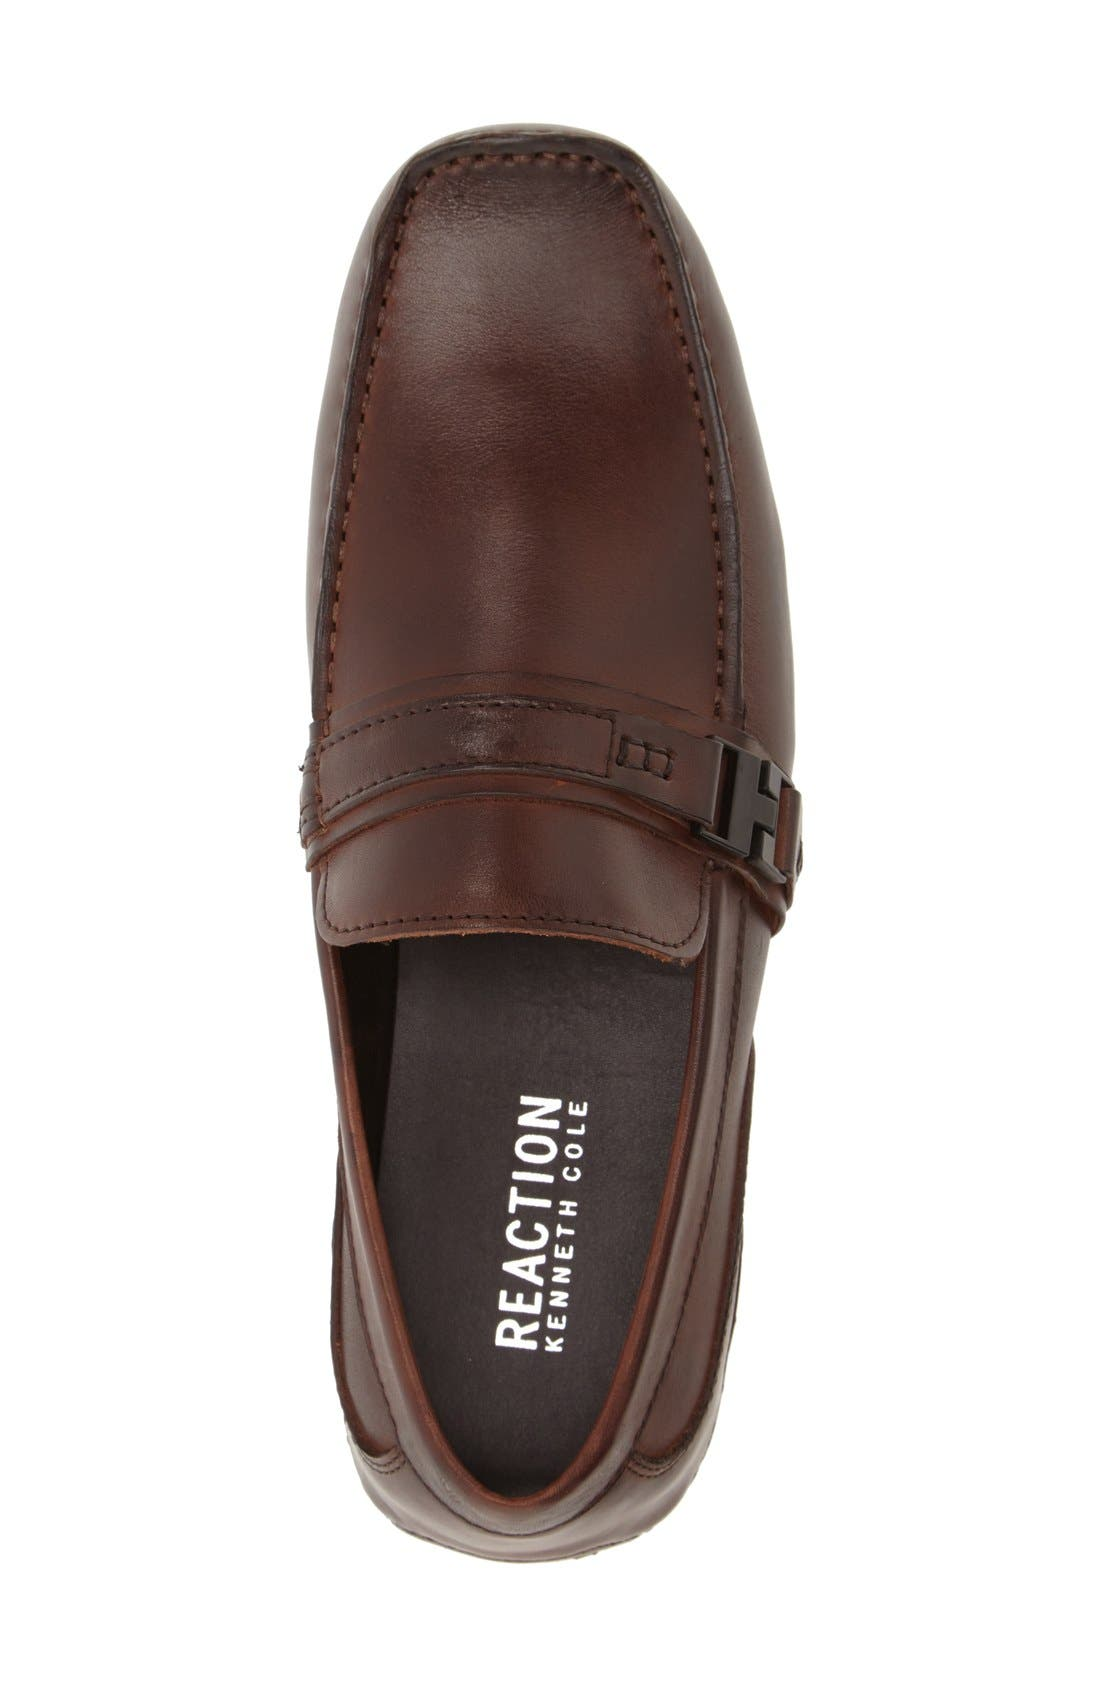 Alternate Image 3  - Reaction Kenneth Cole 'Toast 2 Me' Driving Shoe (Men)